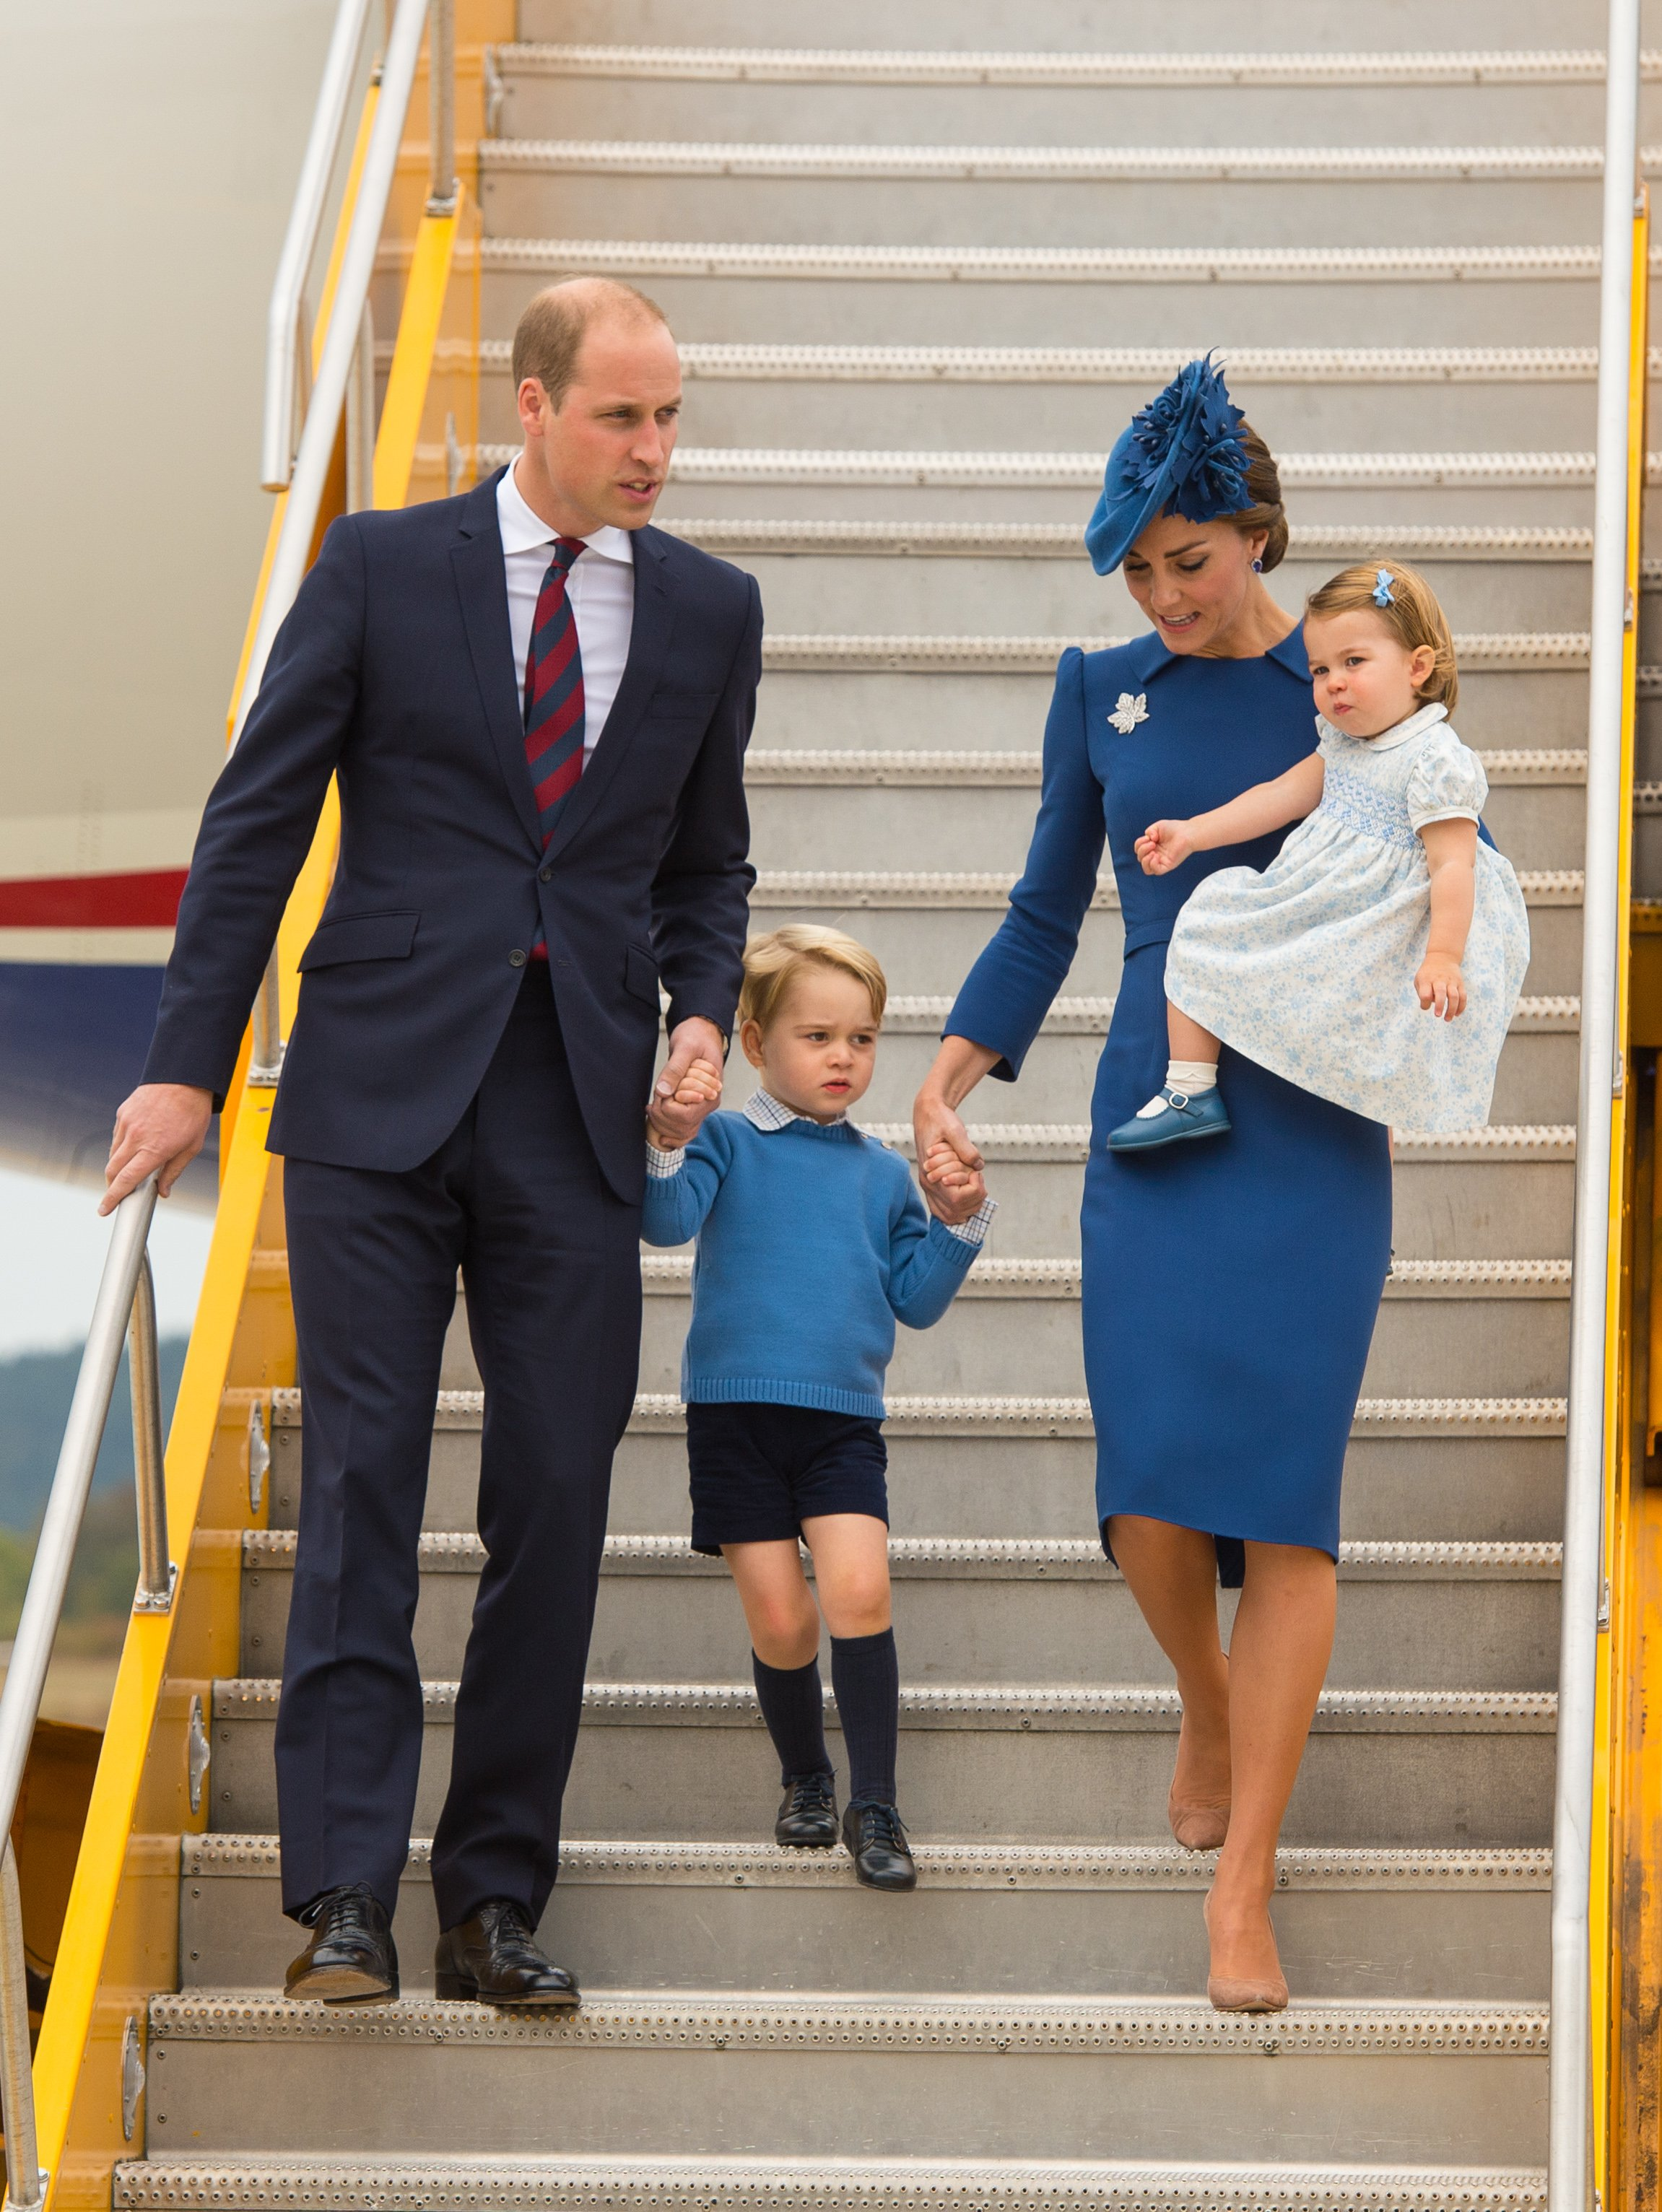 Prince William, Duke of Cambridge, Catherine, Duchess of Cambridge, Prince George of Cambridge and Princess Charlotte of Cambridge arrive at 443 Maritime Helicopter Squadron near Victoria international airport on September 24, 2016 in Victoria, Canada